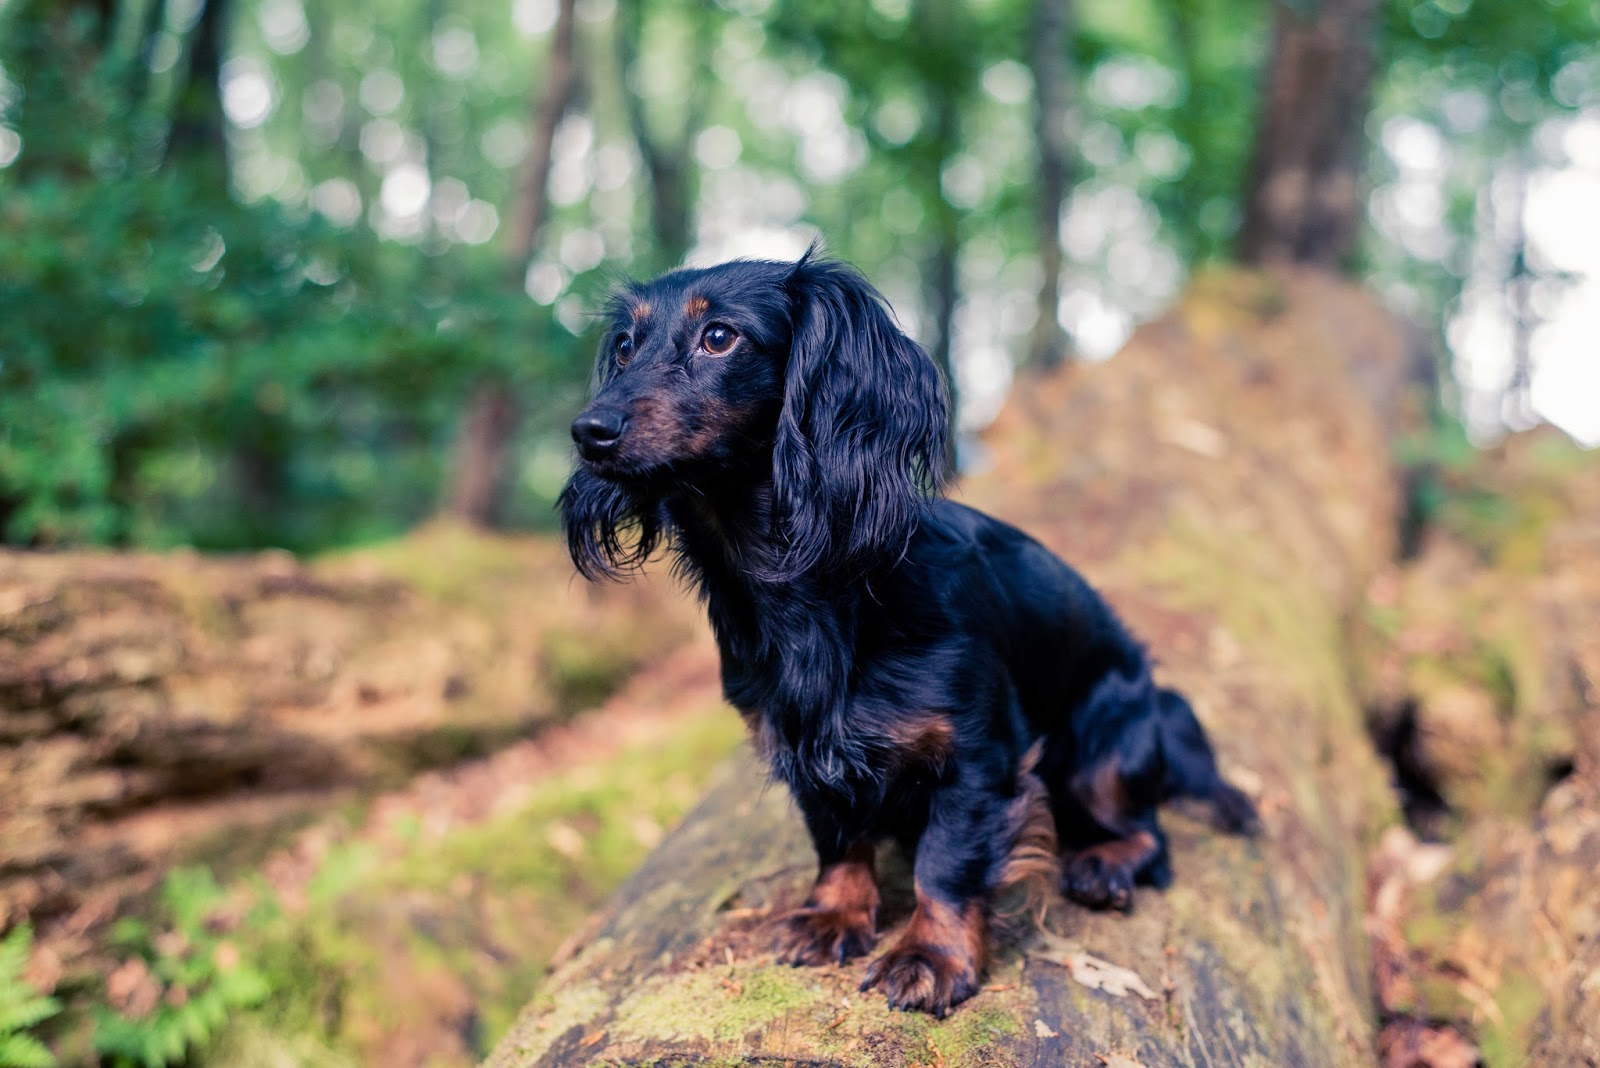 pet photography tips dachshund photo shoot dog liquidgrain liquid grain